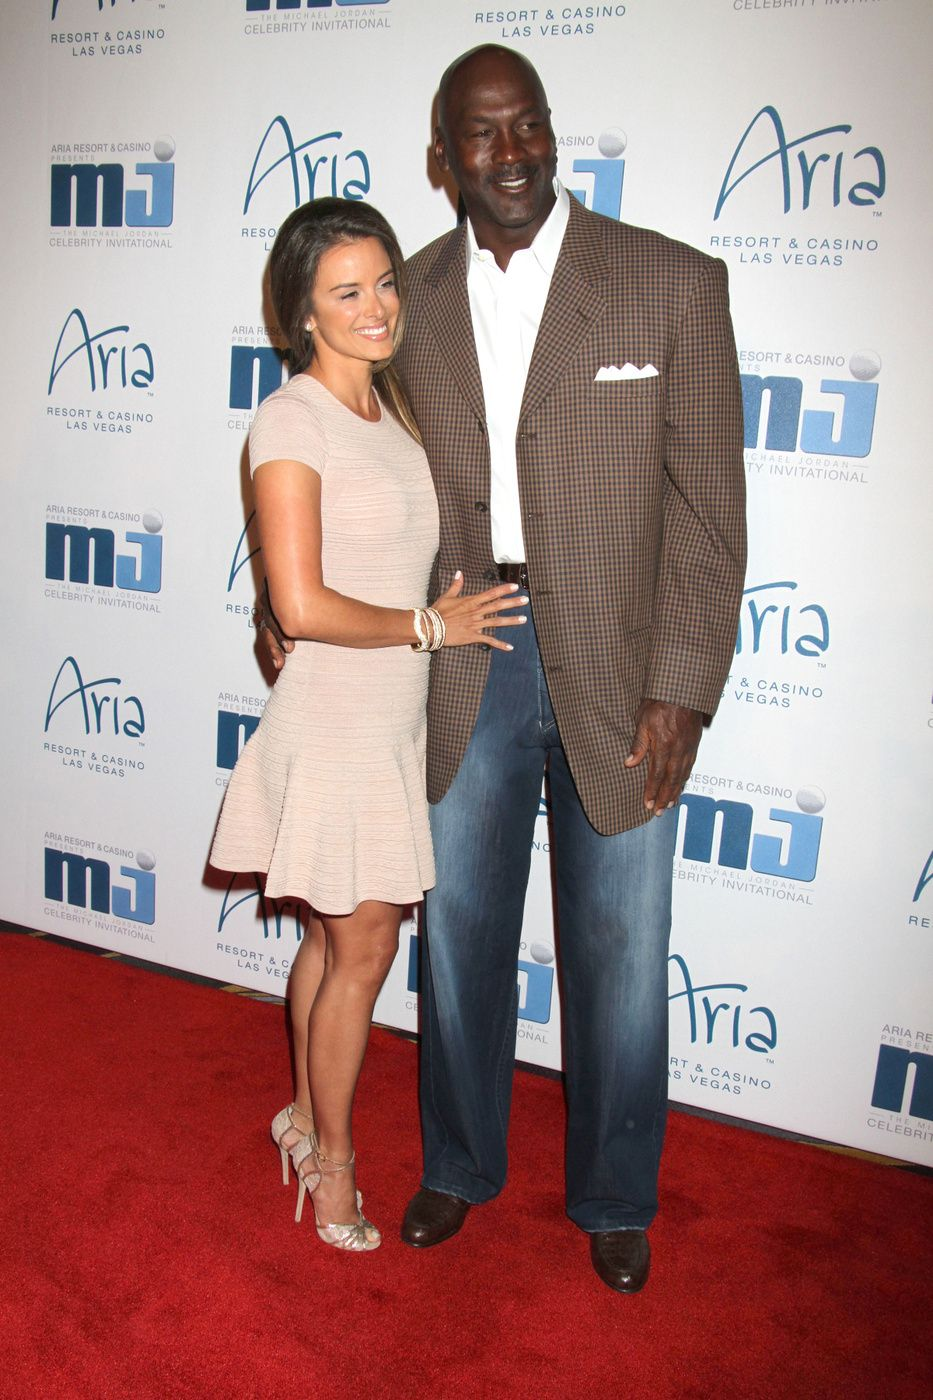 996bbeb8da635 Michael Jordan Expecting Baby with New Wife Yvette Prieto ...